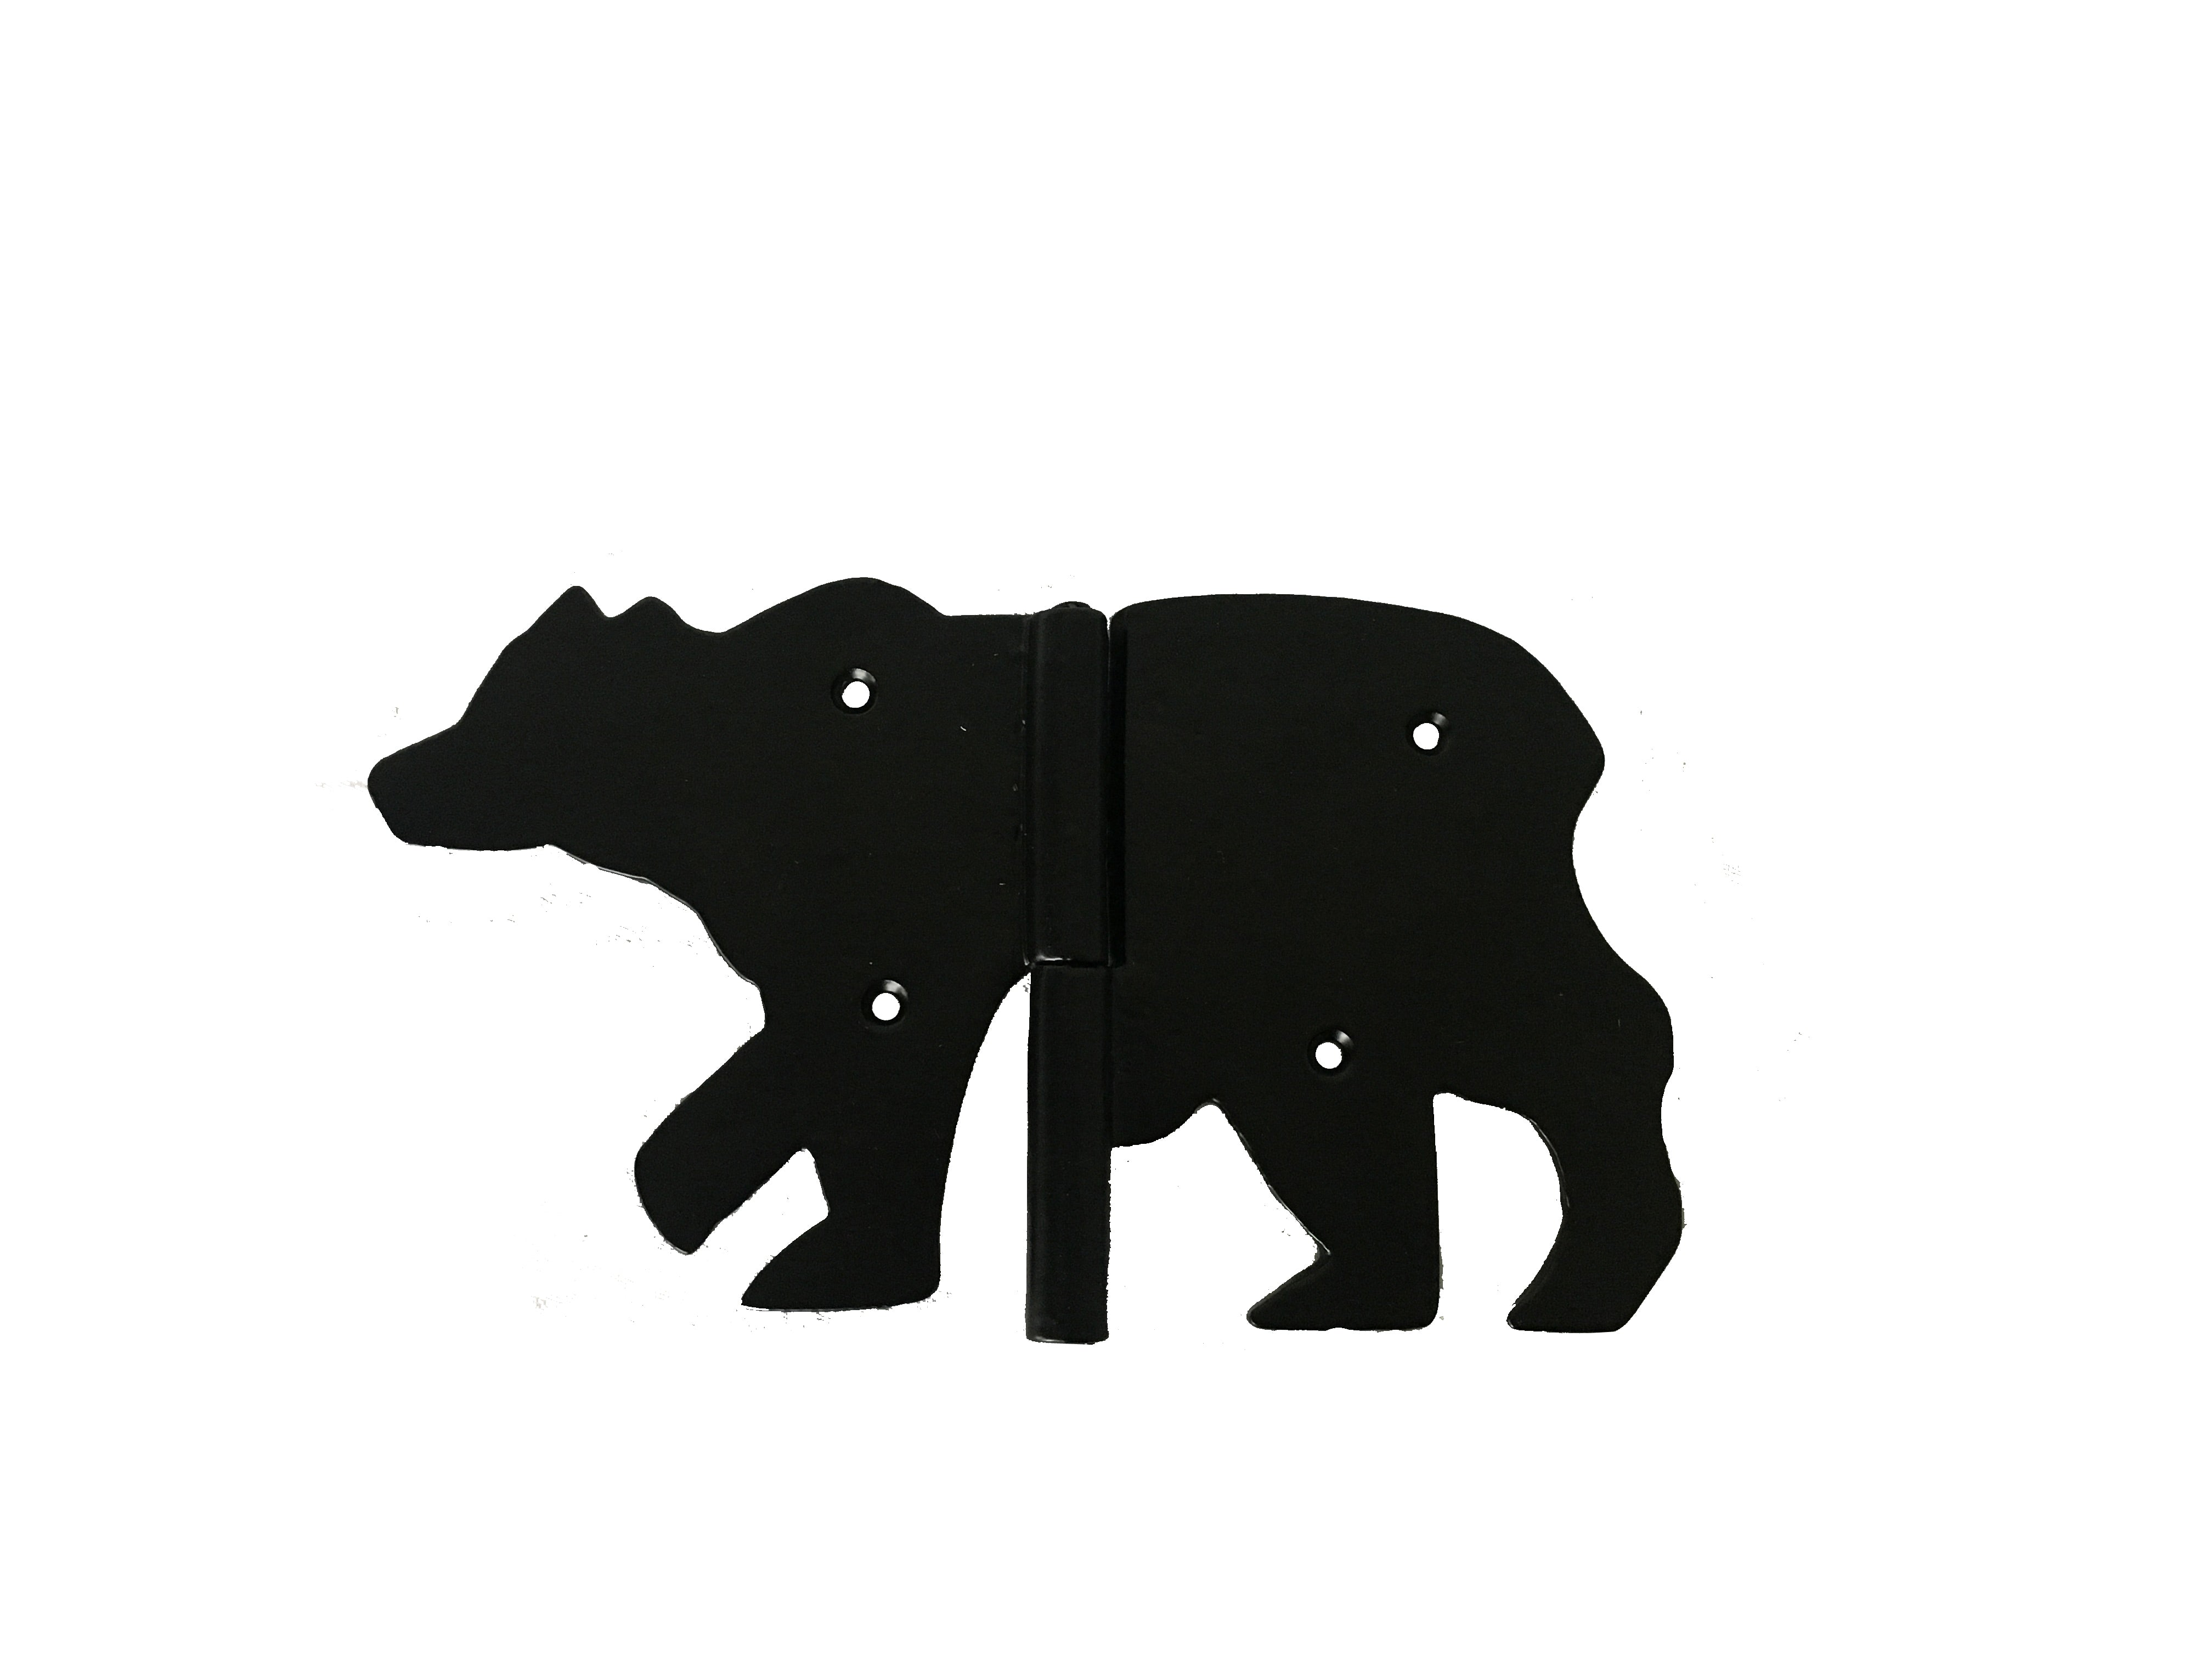 Bear Hinge, Powder Coated Black, 10.5 inches - My Country Home and Garden